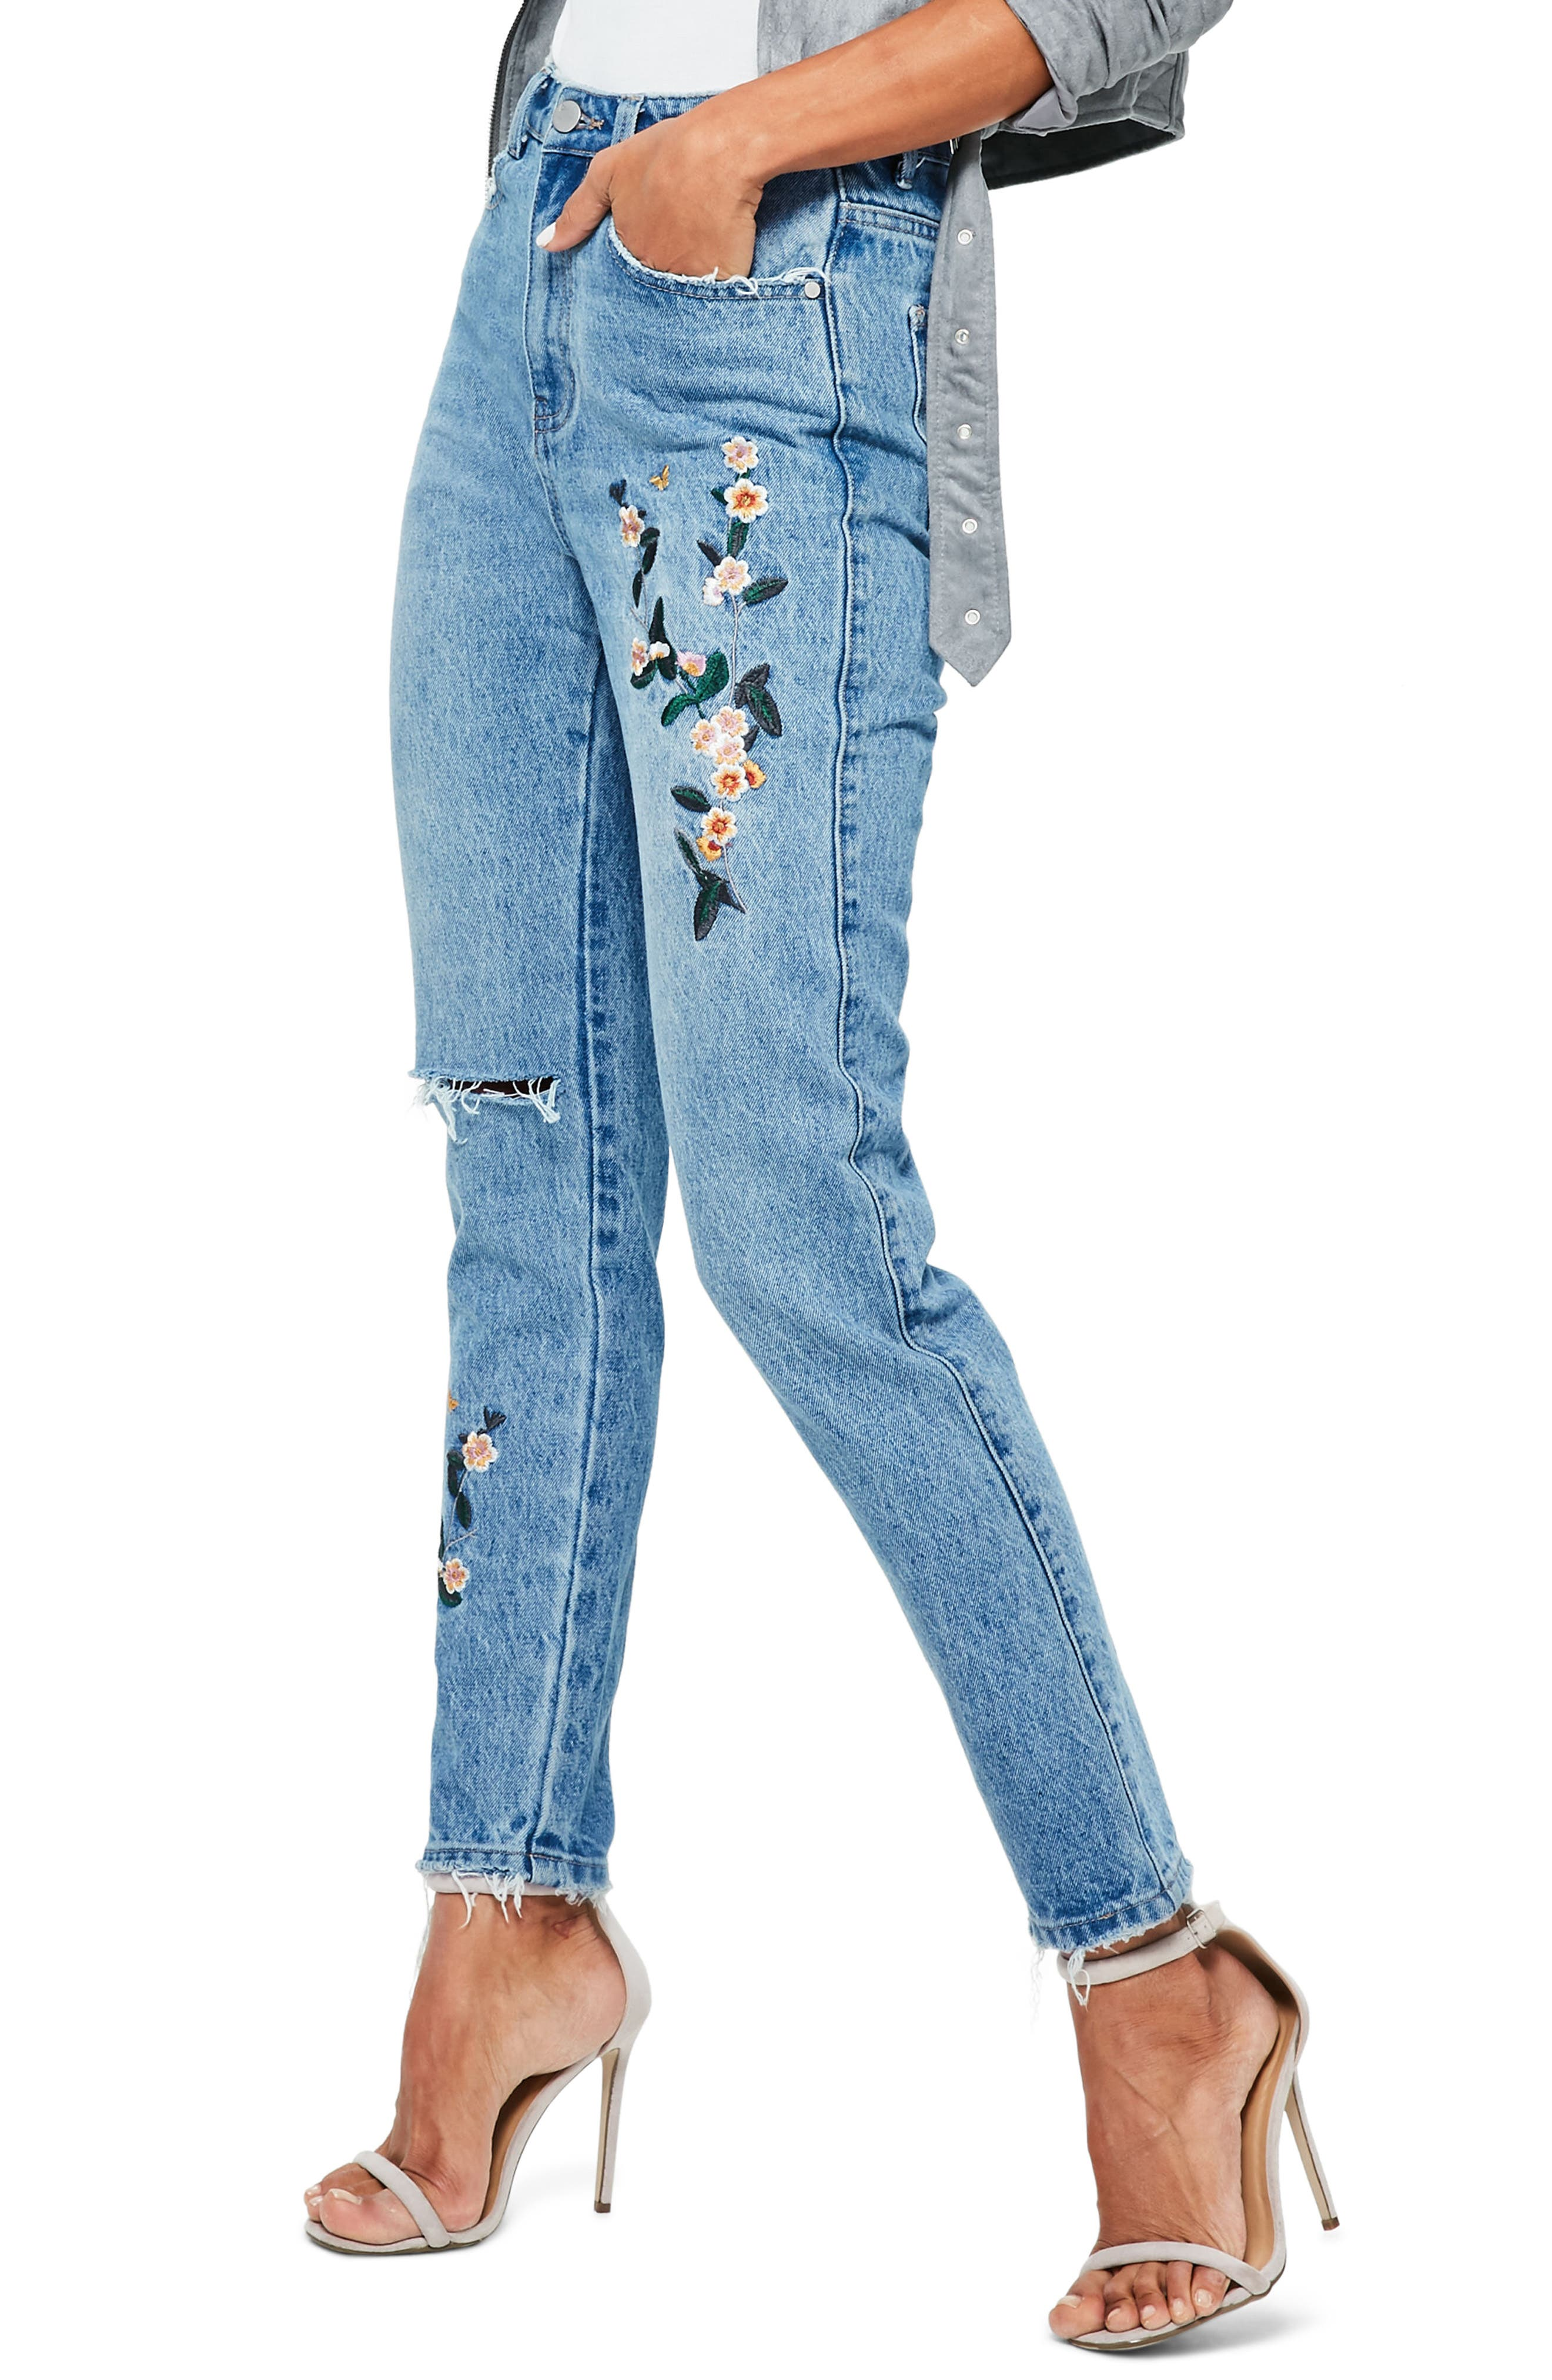 Riot Ripped High Waist Embroidered Jeans,                             Alternate thumbnail 3, color,                             Blue